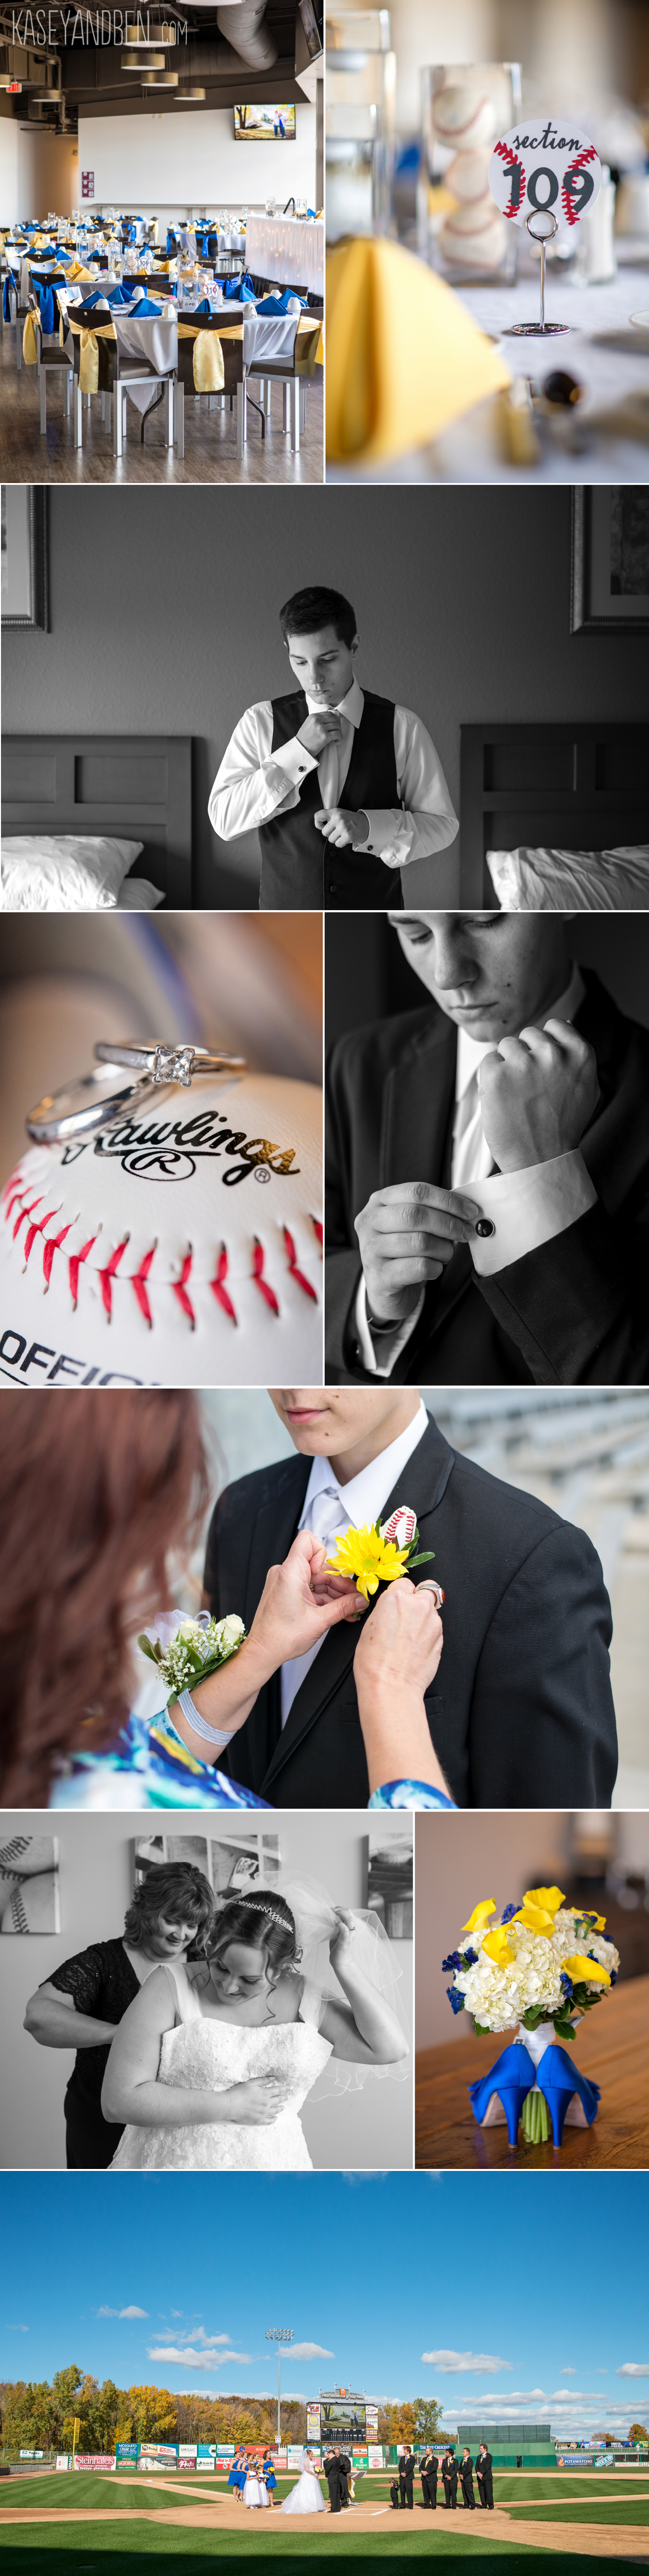 Brewers-Wedding-Timber-Rattlers-Stadium-Photography-Wedding-Vintage-Appleton-Doty-Park-Baseball-Neenah-Outdoors-Green-Bay1